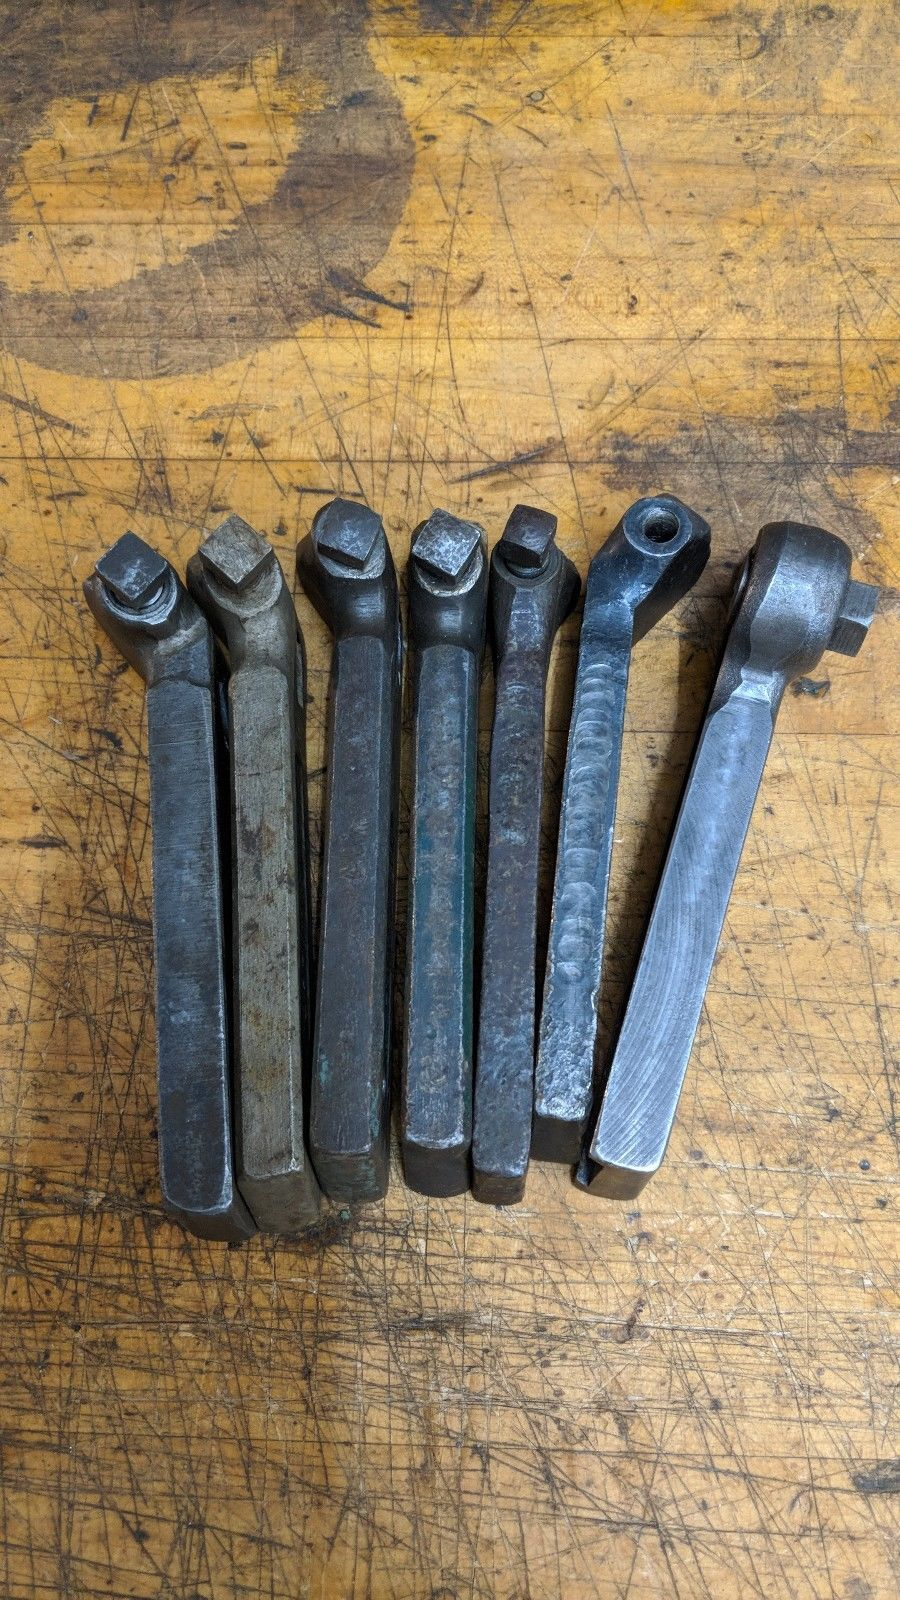 7 ASSORTED METAL LATHE LANTERN TOOL POST BIT HOLDERS ARMSTRONG JH WILLIAMS SET4